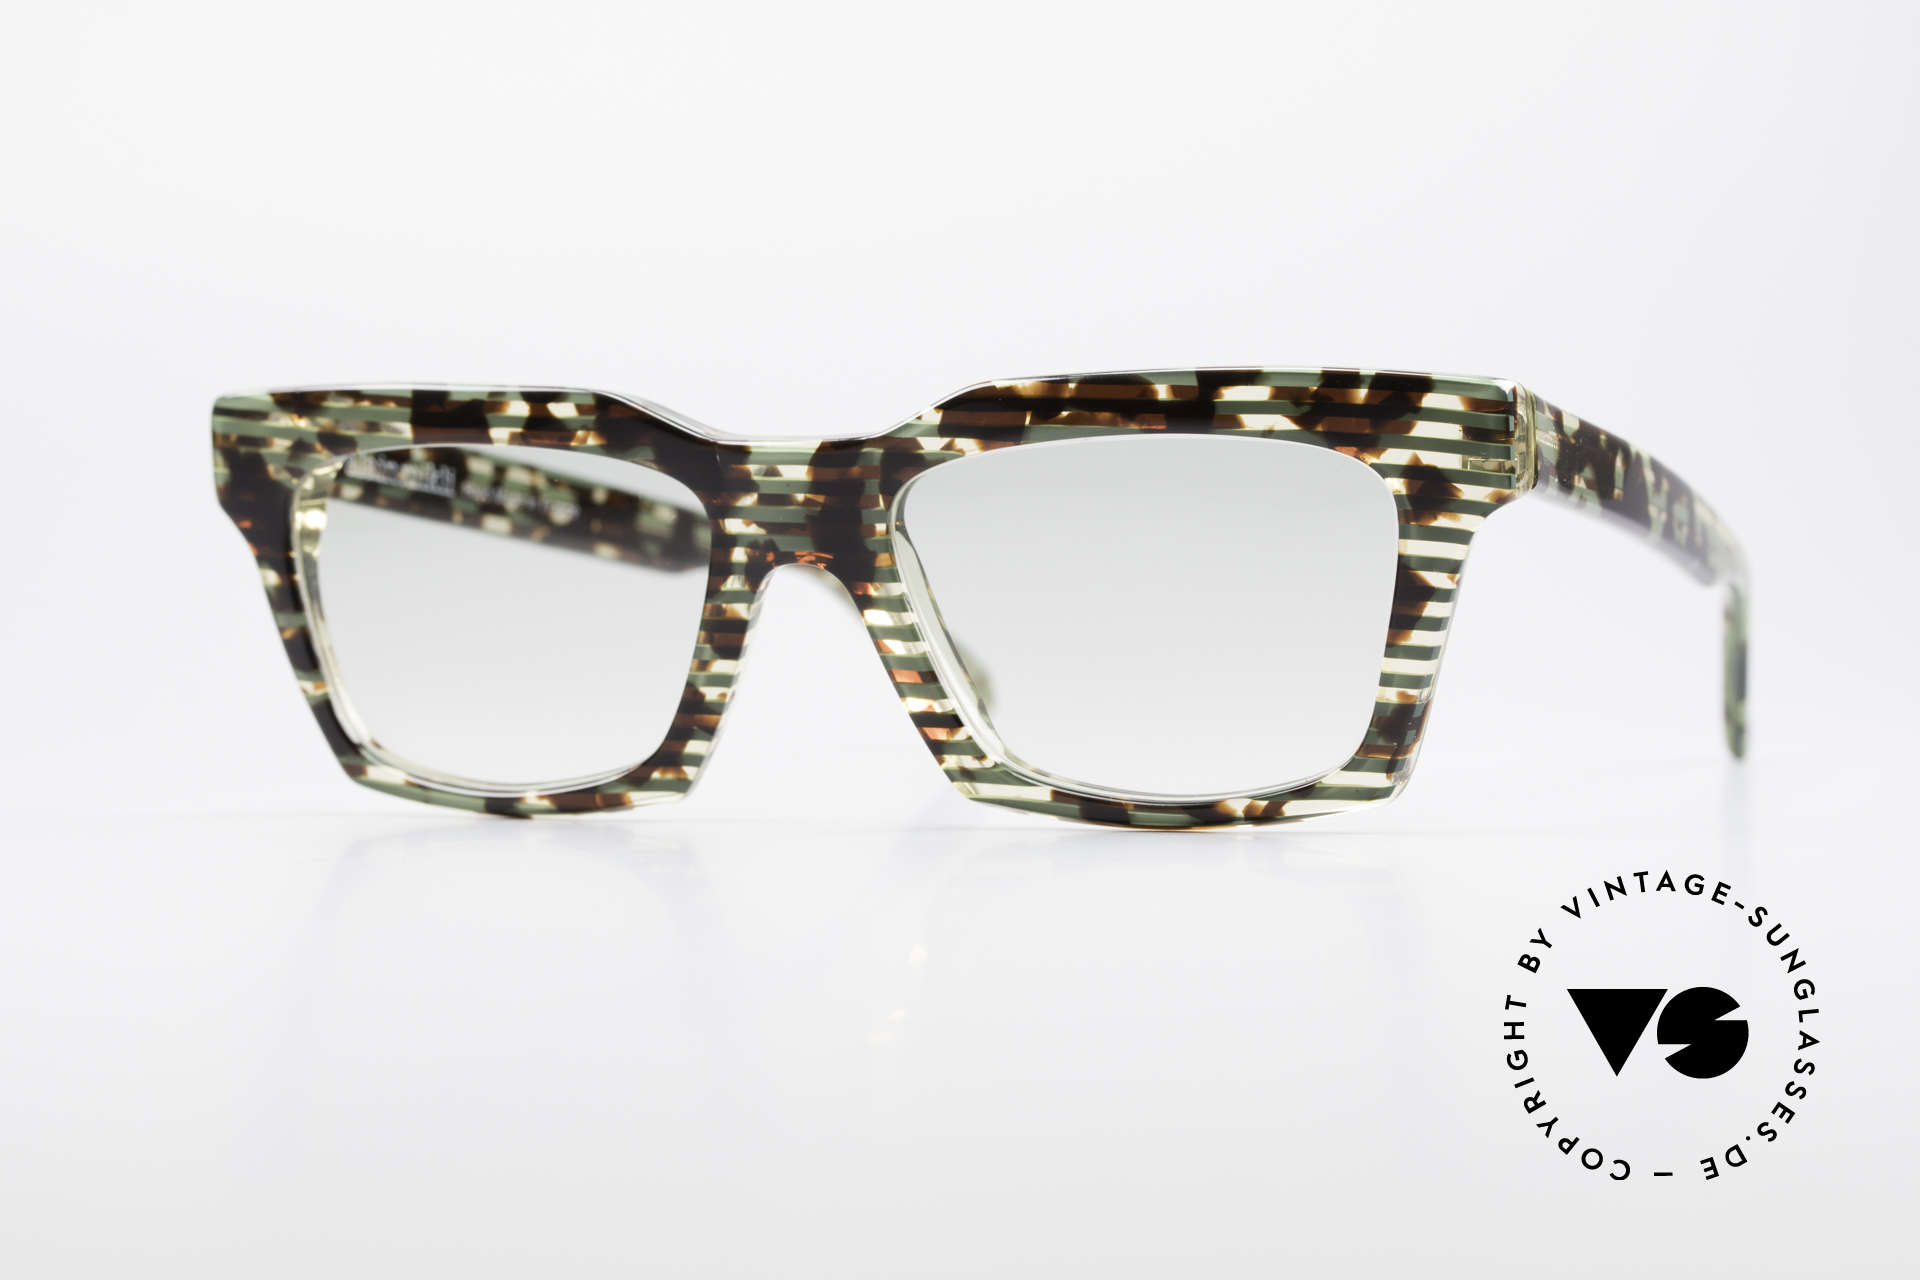 Alain Mikli 710 / 825 Extraordinary 80's Frame, vintage ALAIN MIKLI designer sunglasses from 1986, Made for Men and Women